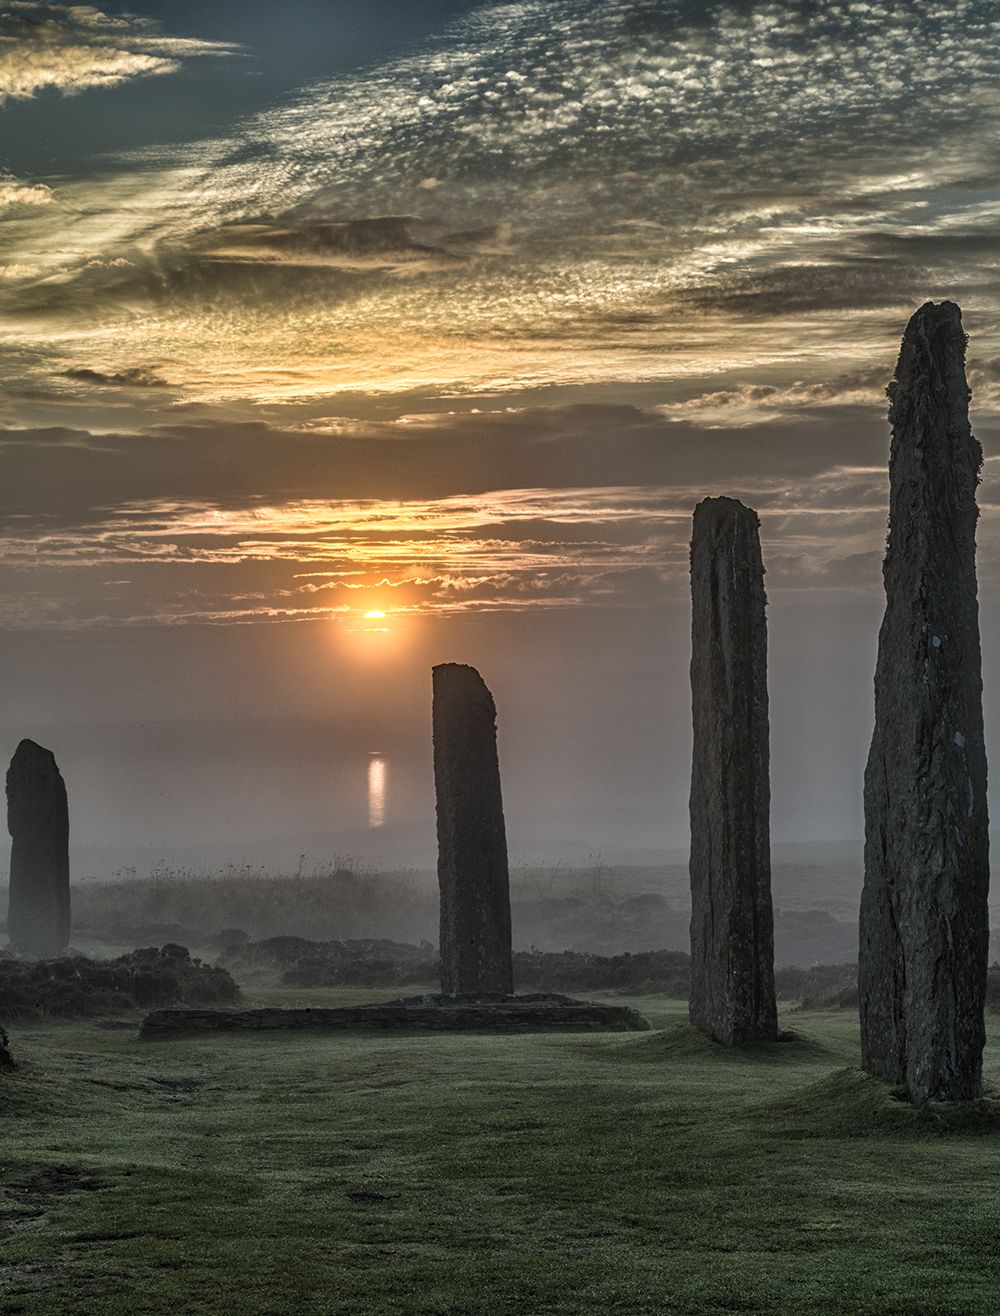 Sunrise at The Ring of Brodgar